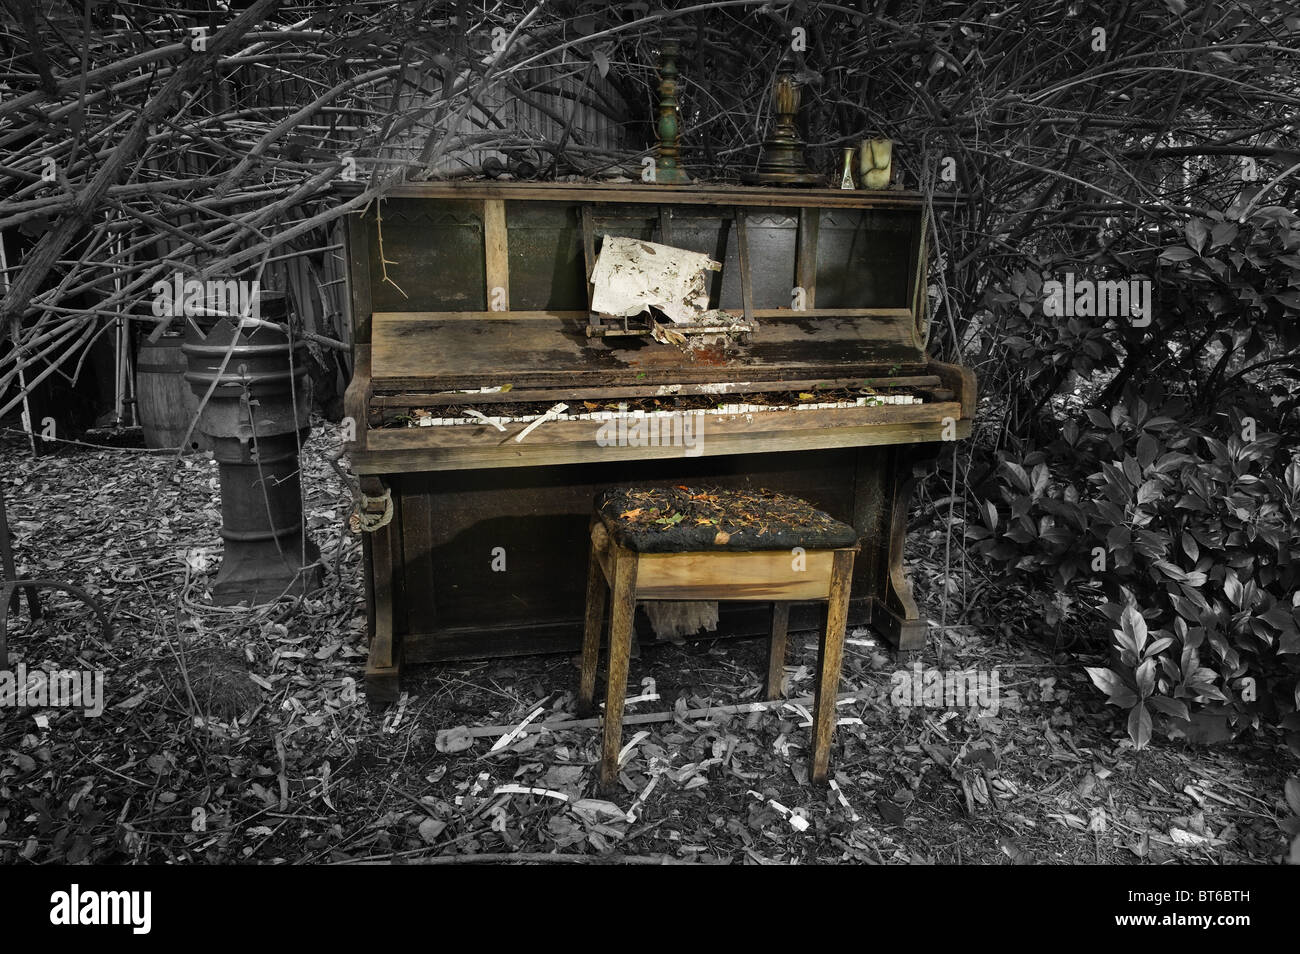 Derelict piano and stool among the garden bushes - Stock Image